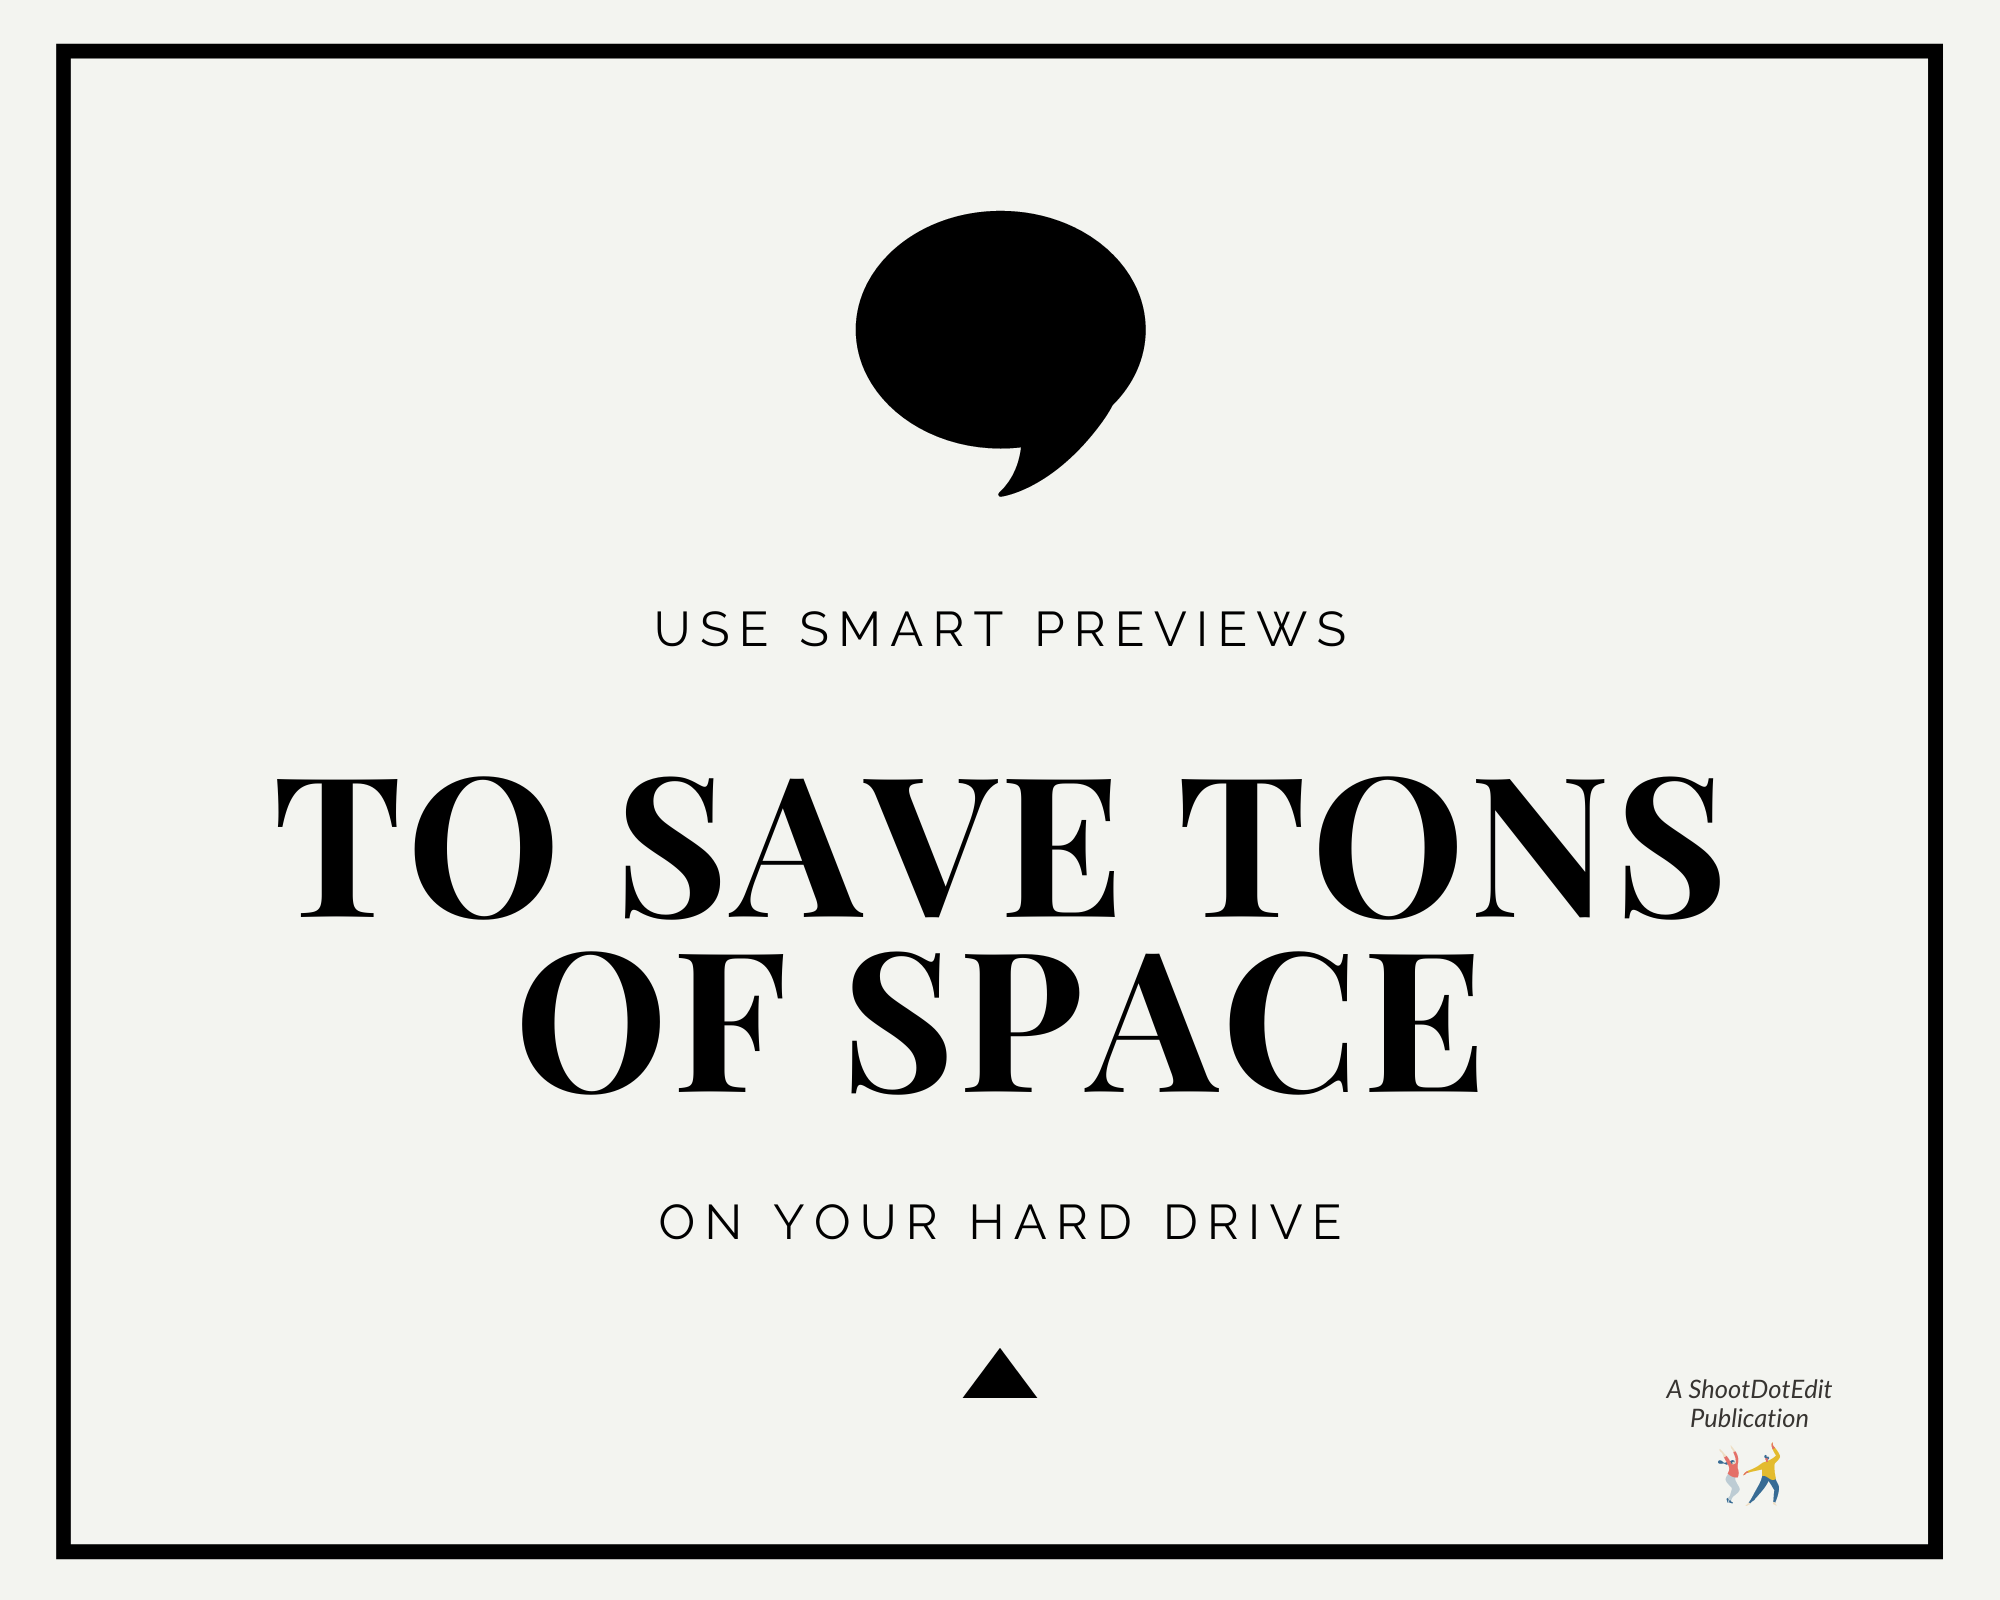 Infographic stating use this feature to save tons of space on your hard drive